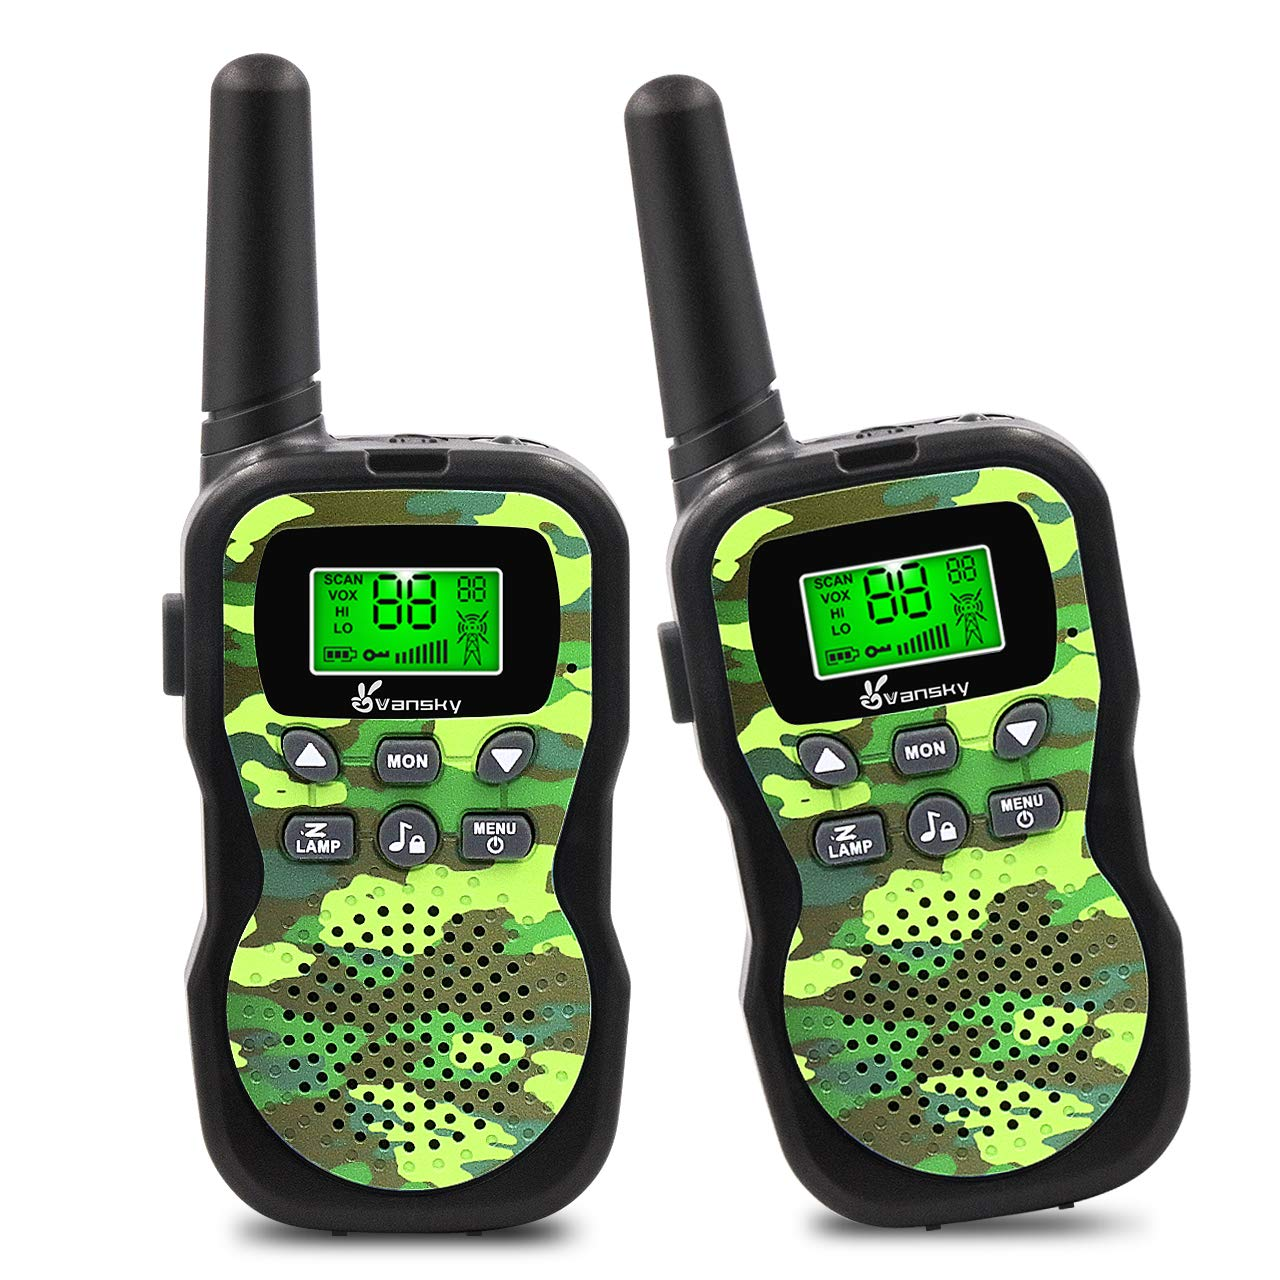 Vansky Walkie Talkies for Kids, Kids Toys 4 5 6 7 8 Age Boy Girl Long Range 22 Channel Built-in Flashlight 2 Way Radio Best Gifts Games, Outdoor Adventure, Camping, Hiking (Camo Green) by Vansky (Image #1)